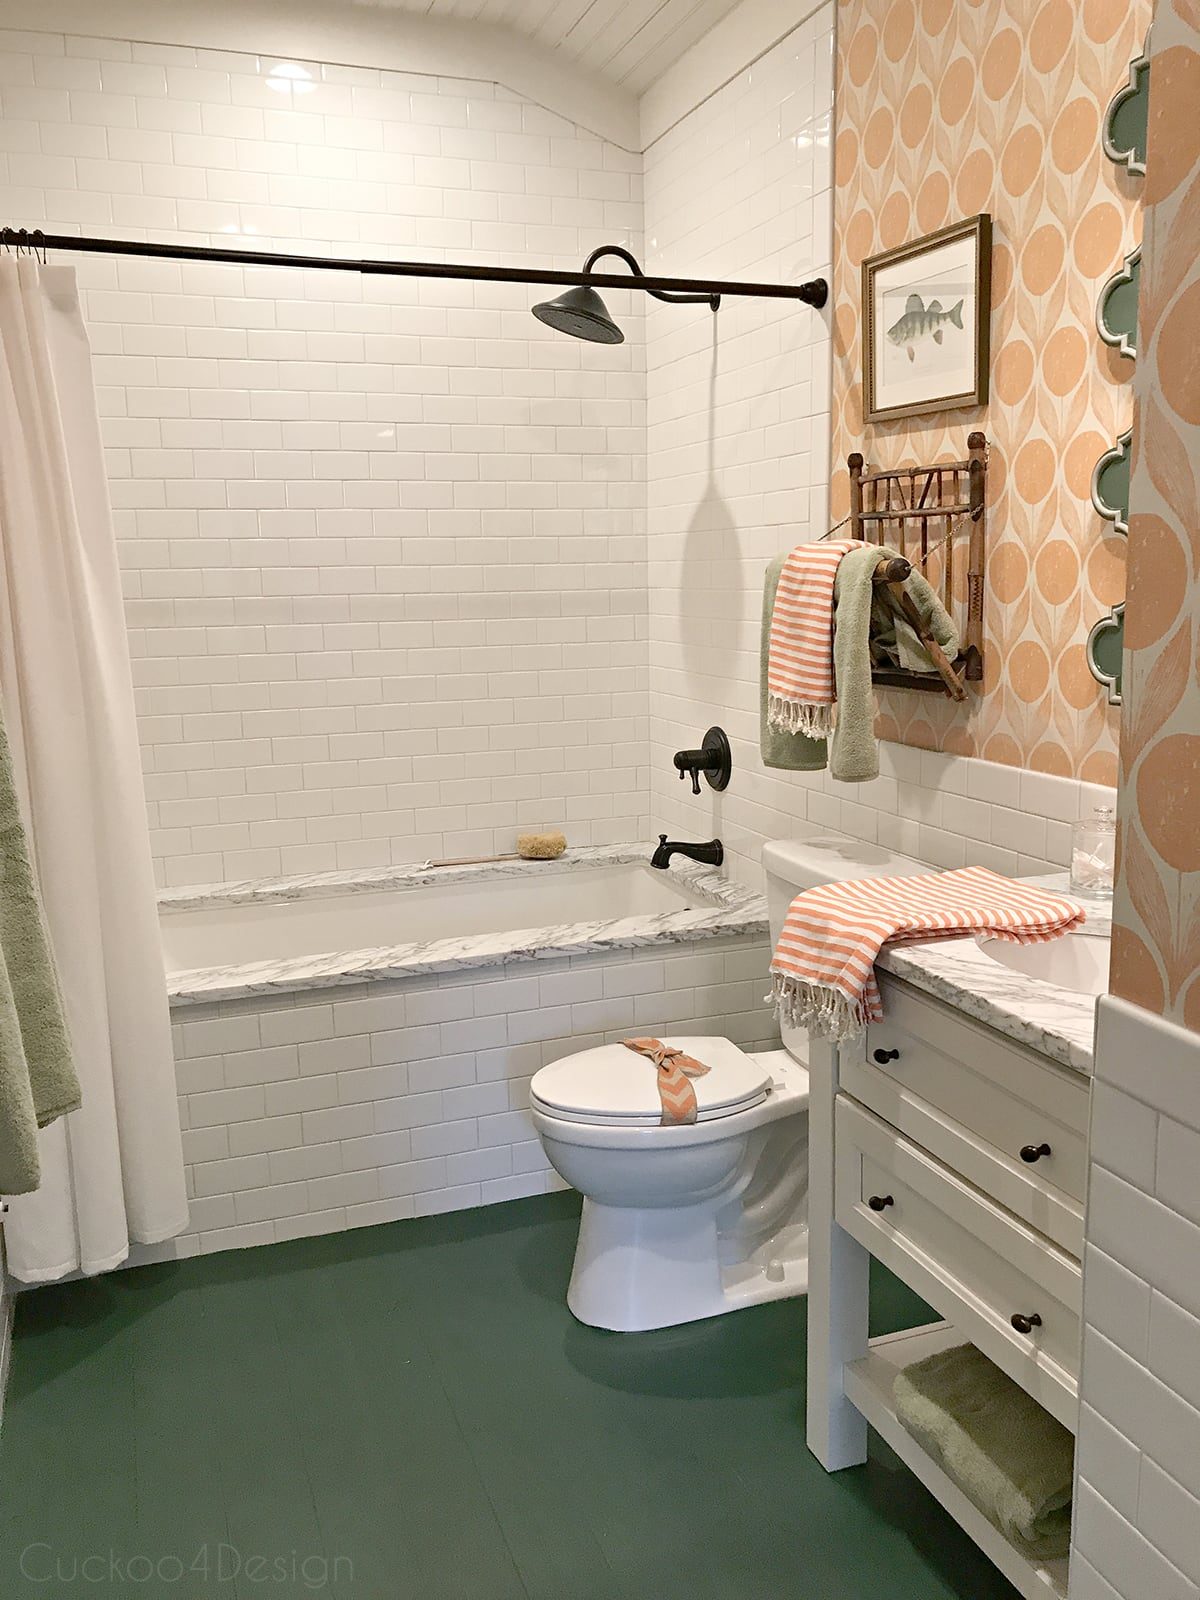 green scalloped mirror with orange wallpaper in bathroom and hunter green painted wood floor